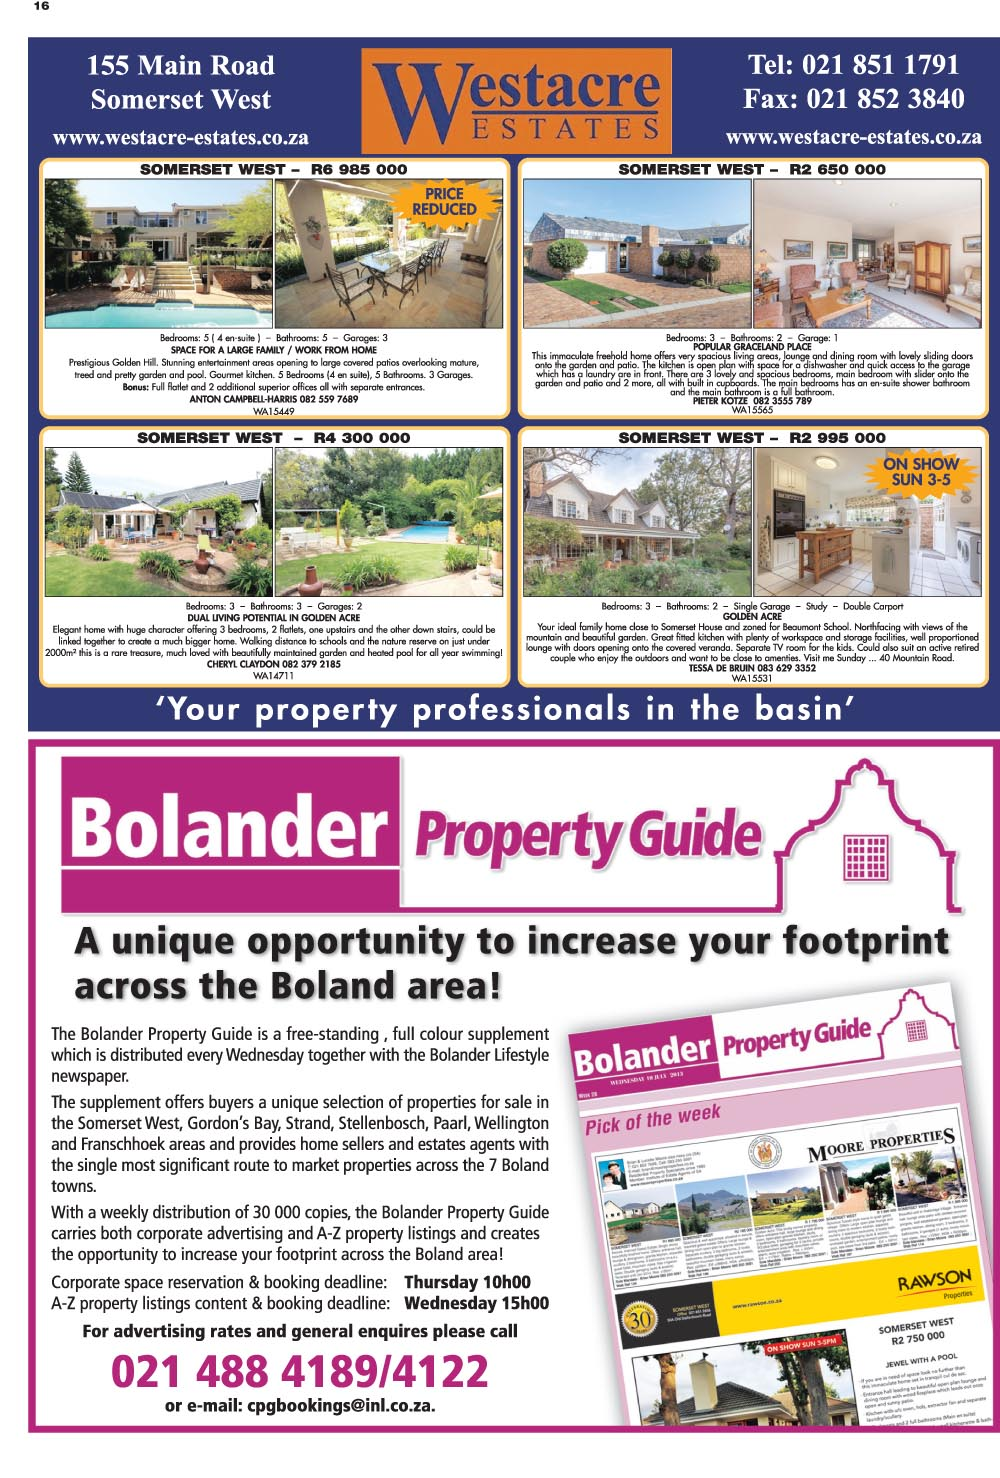 You are browsing images from the article: Property Selection 20th July 2016